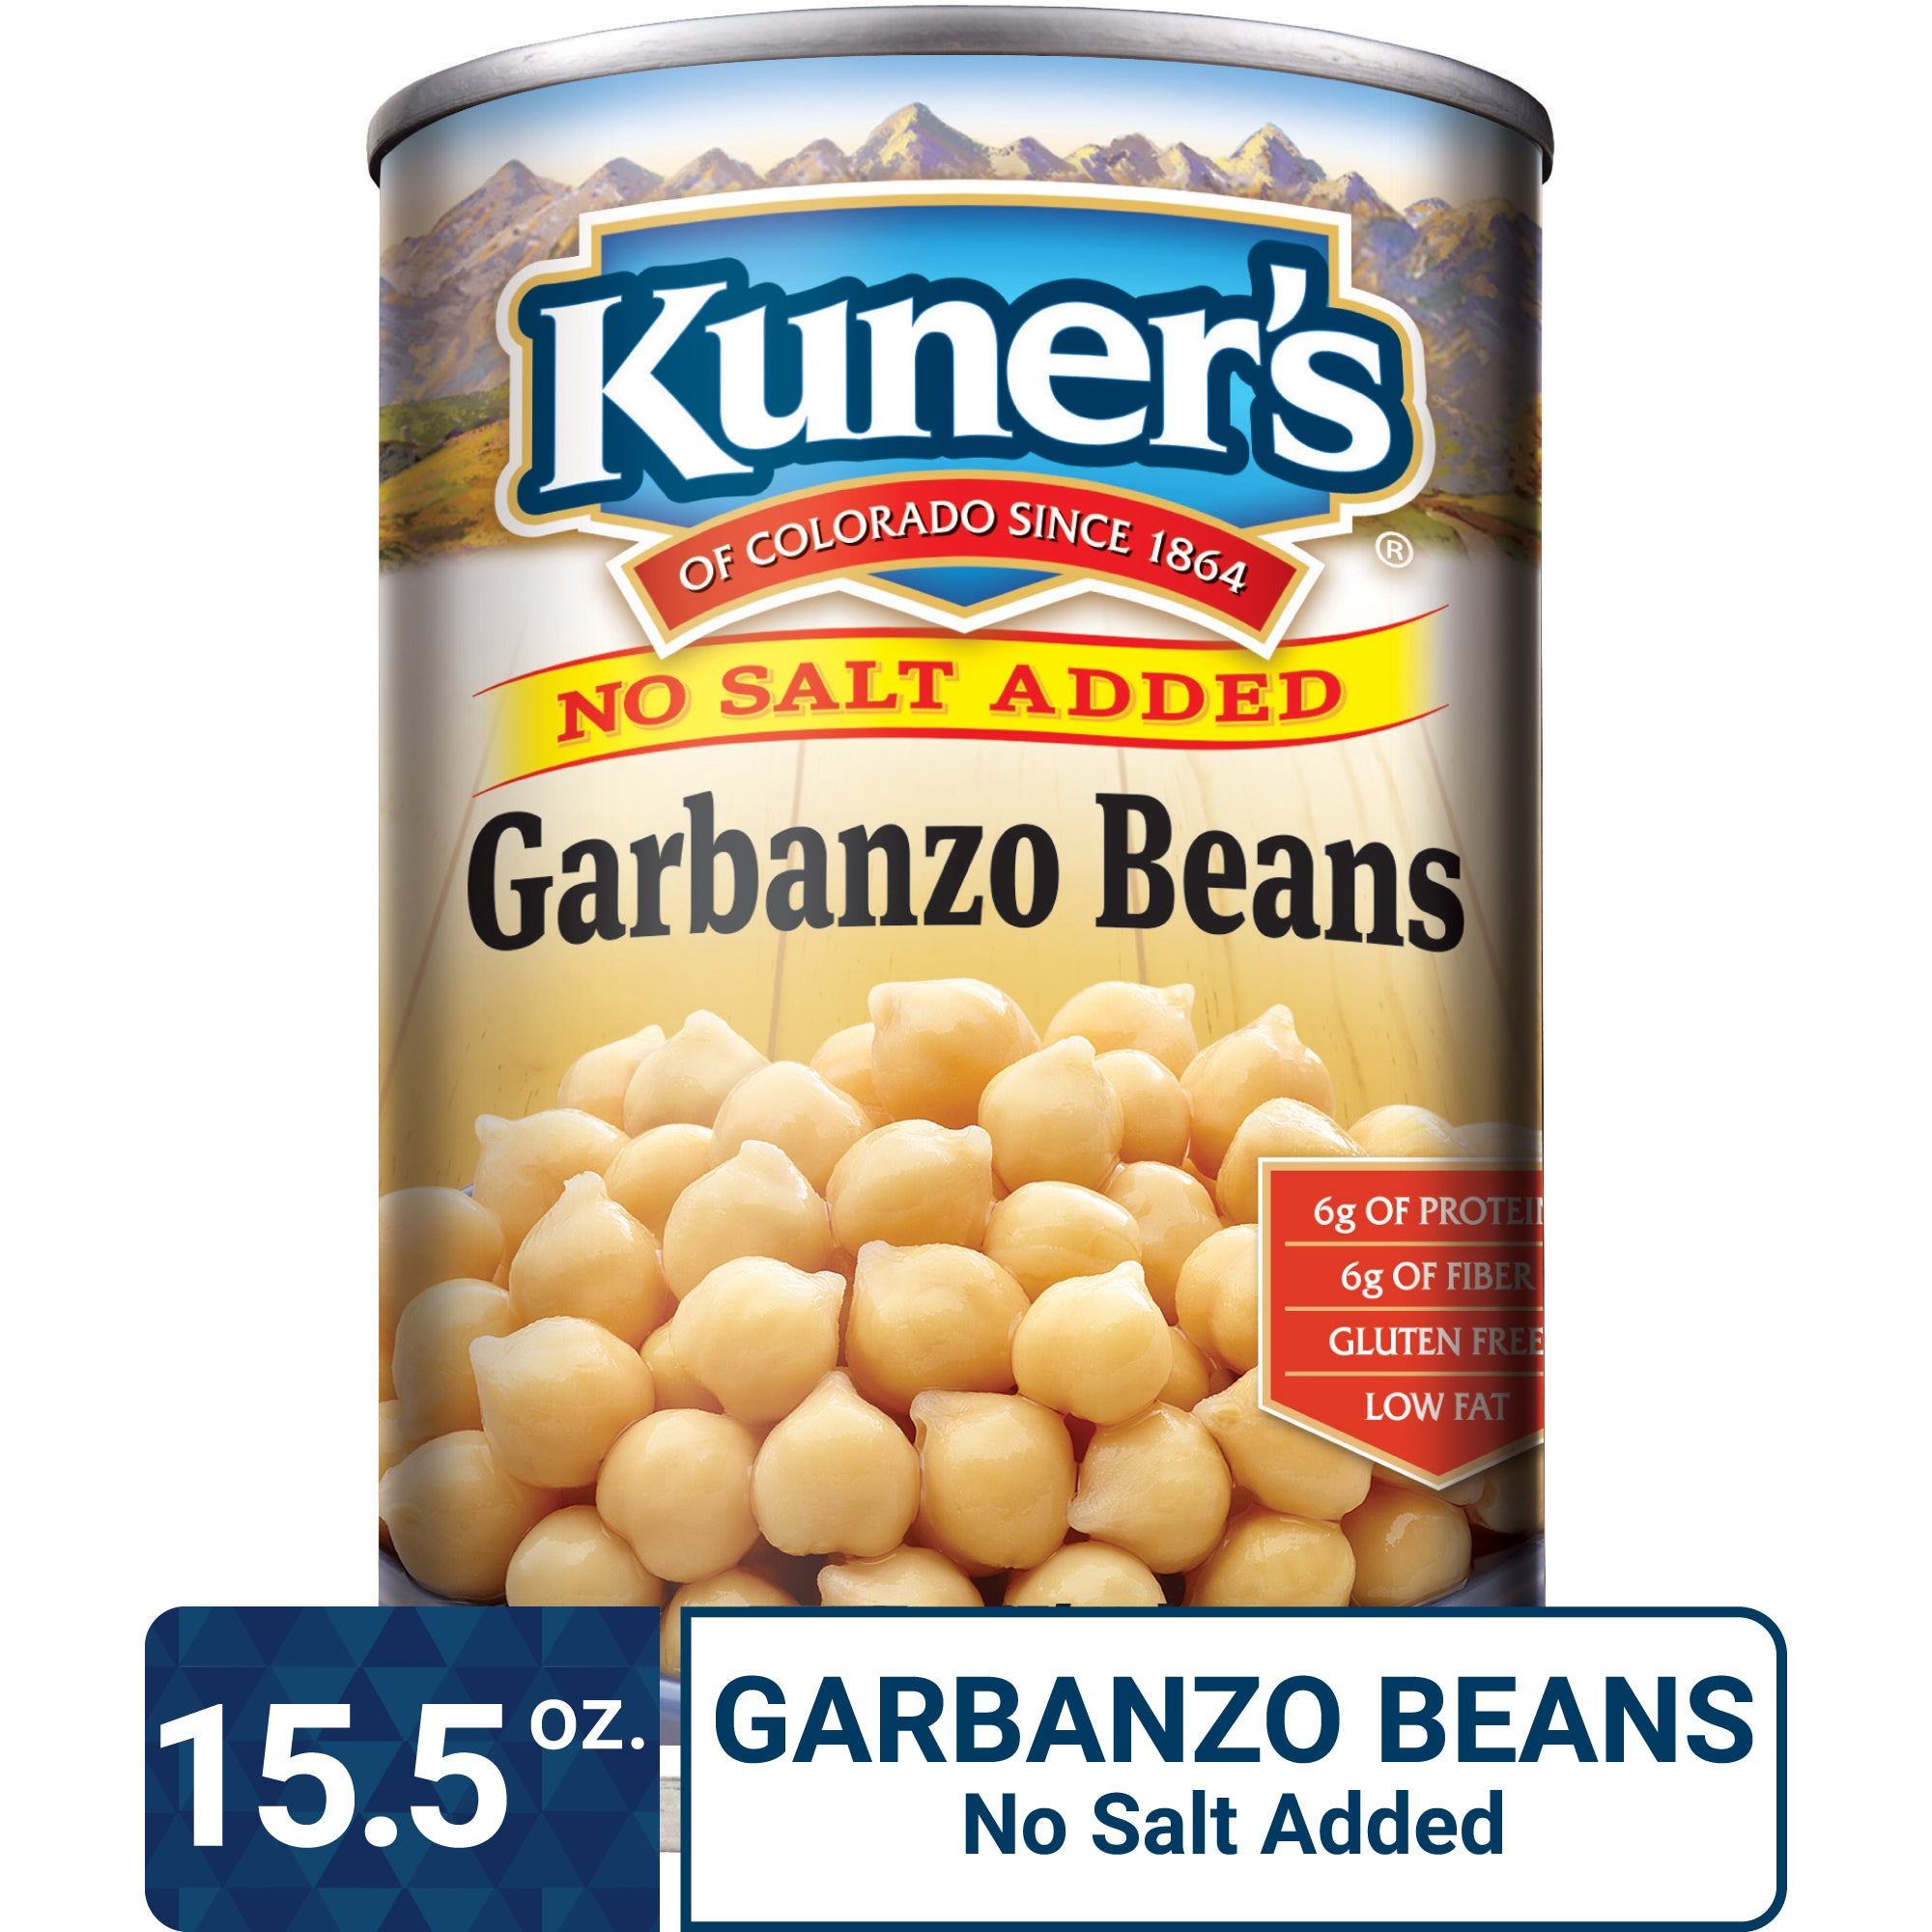 Kuner's Garbanzo Beans No Salt Added, 15.5oz (Pack of 12)